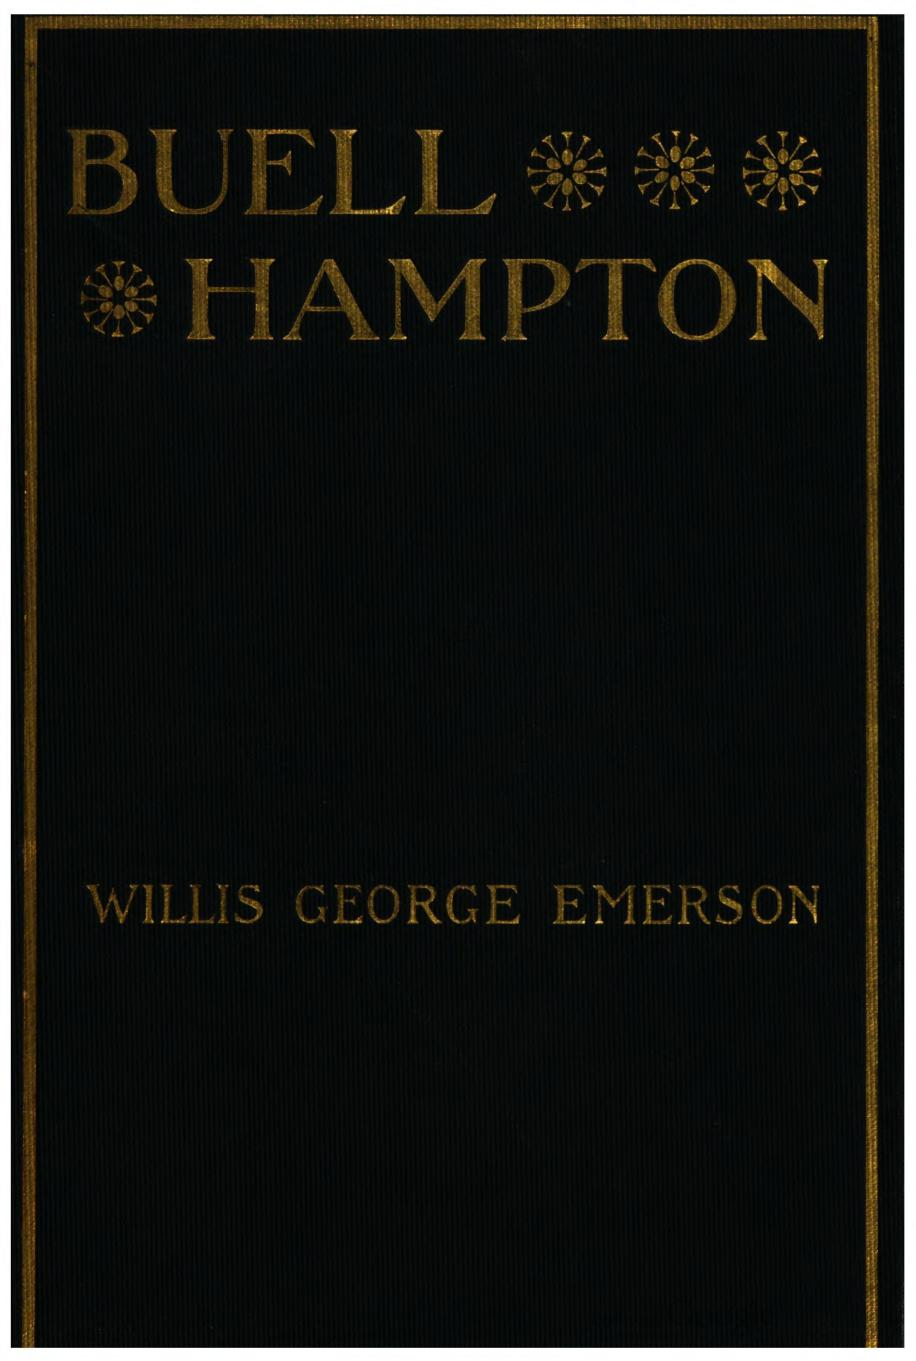 Buell hampton by willis george emerson 0002 fandeluxe Images